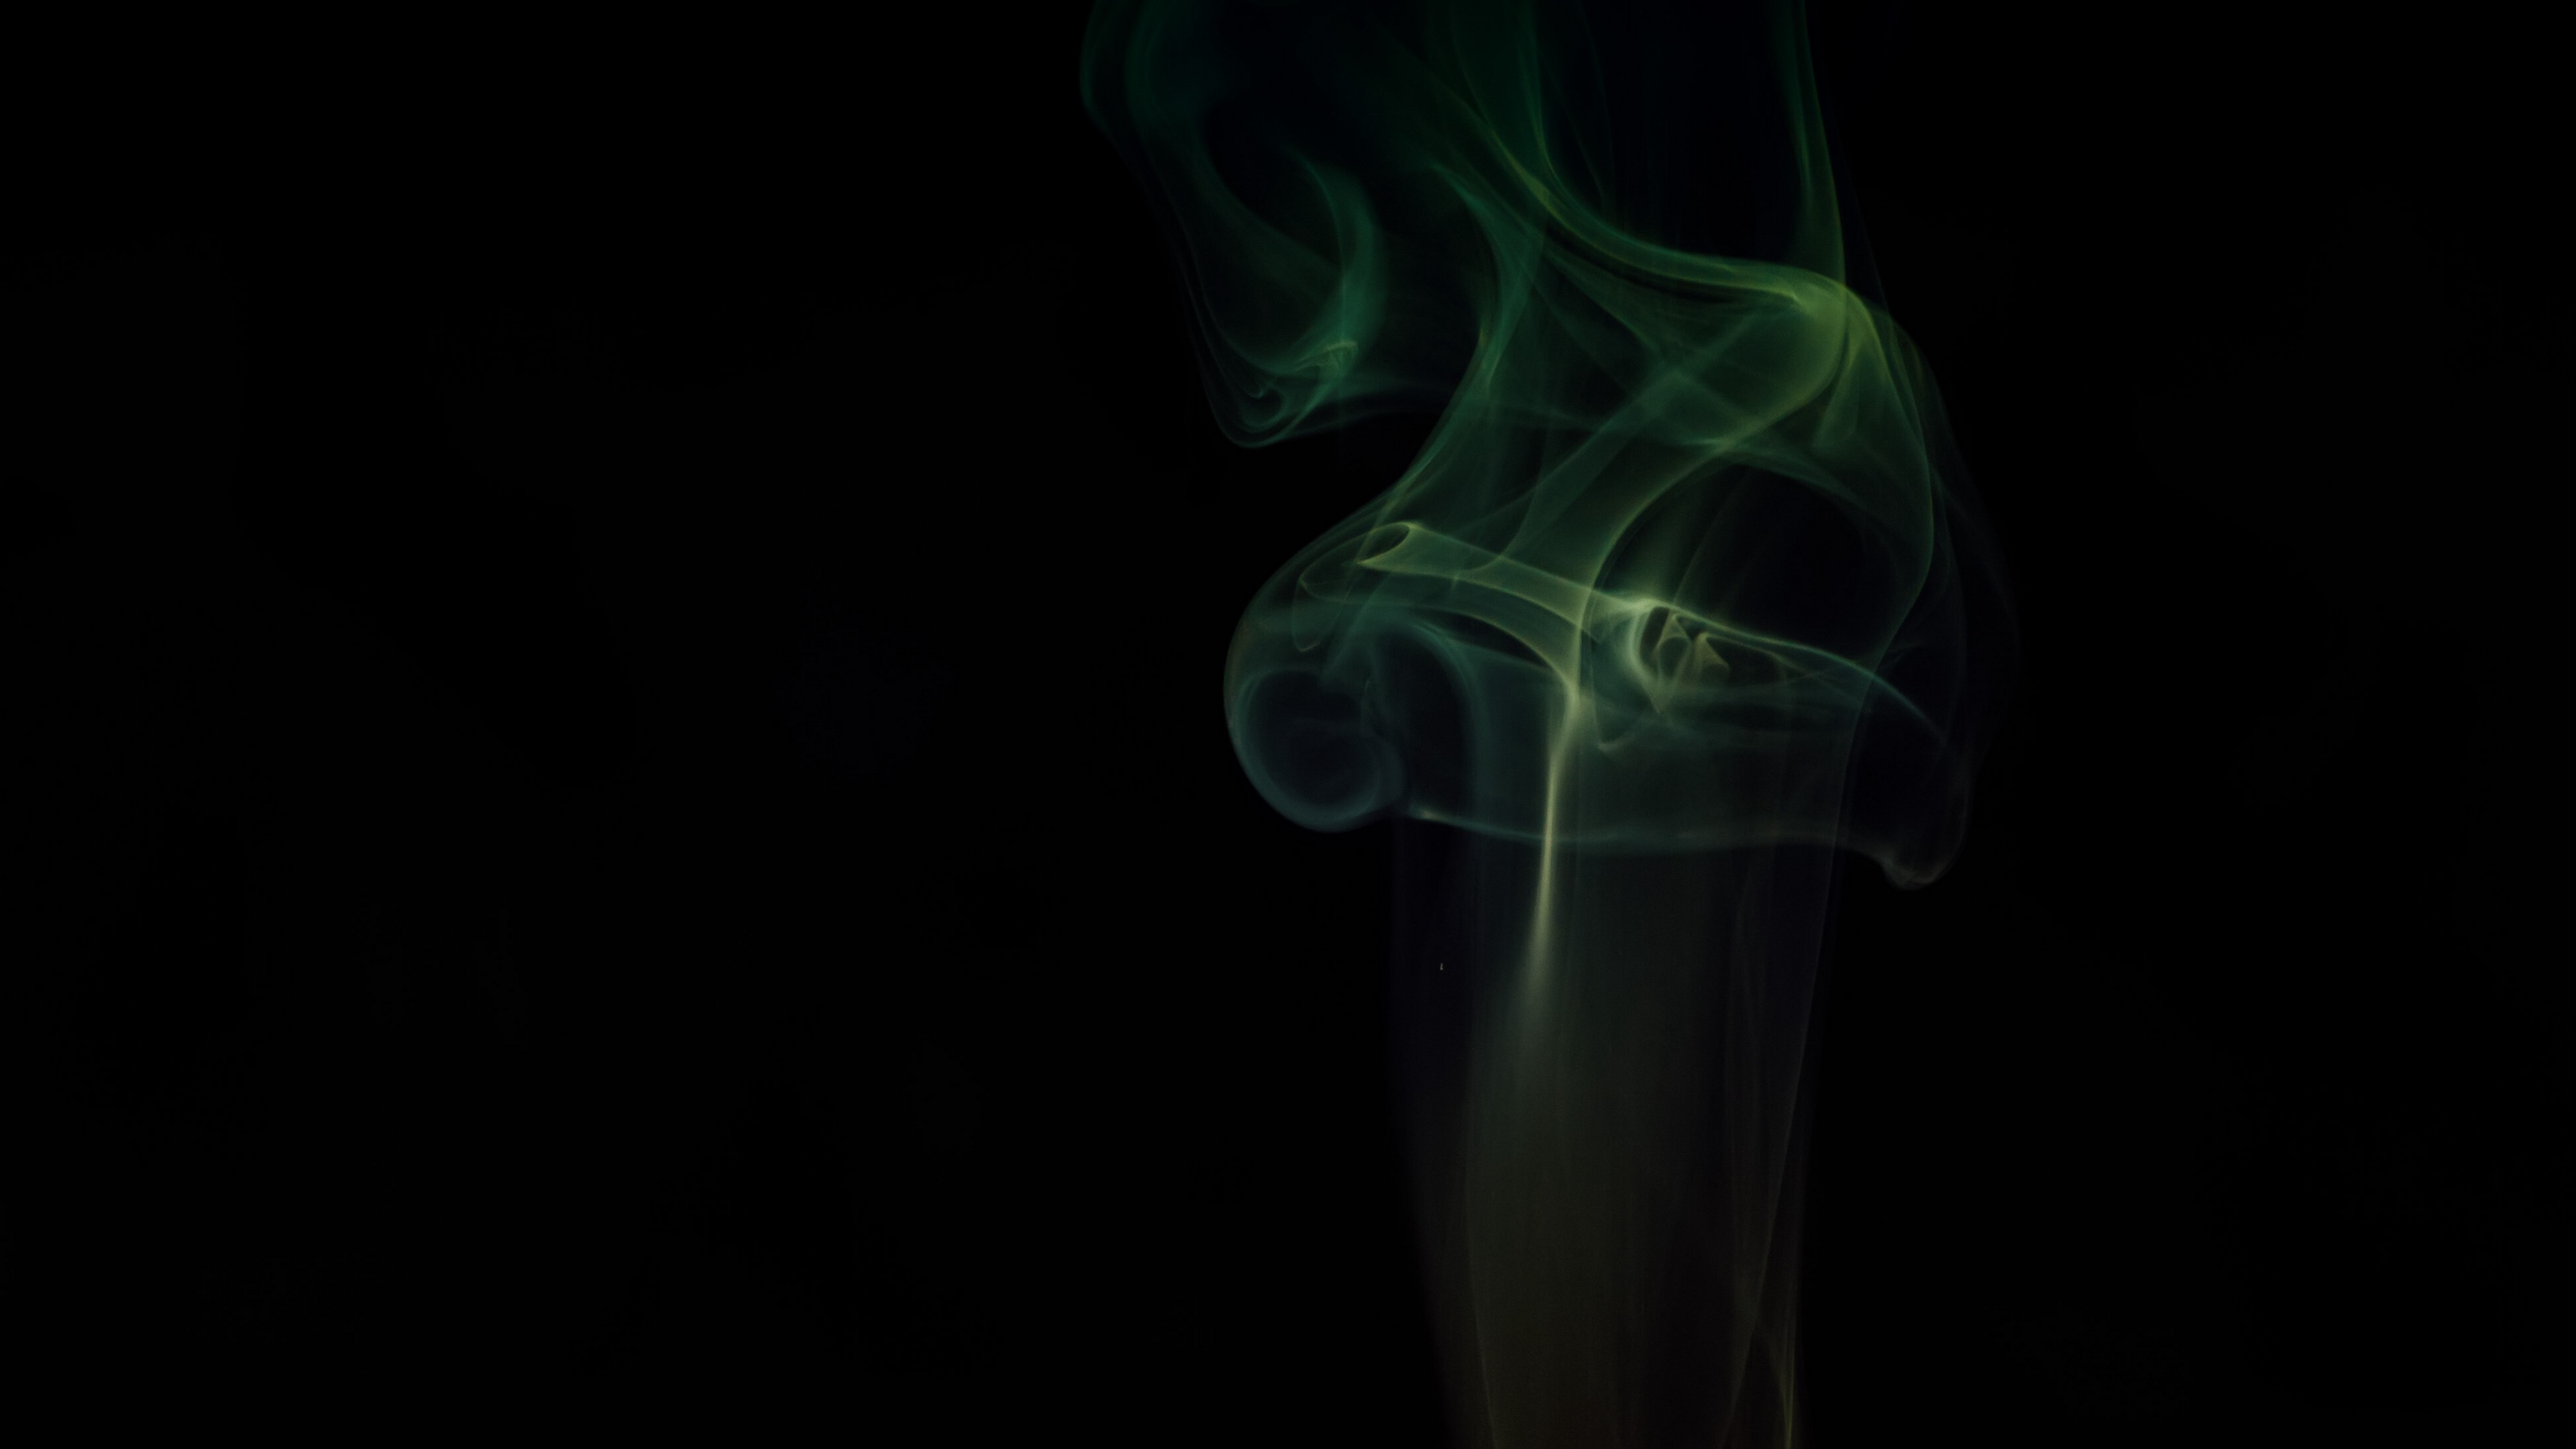 smoke shroud clot dark background 4k 1539370516 - smoke, shroud, clot, dark background 4k - Smoke, shroud, clot